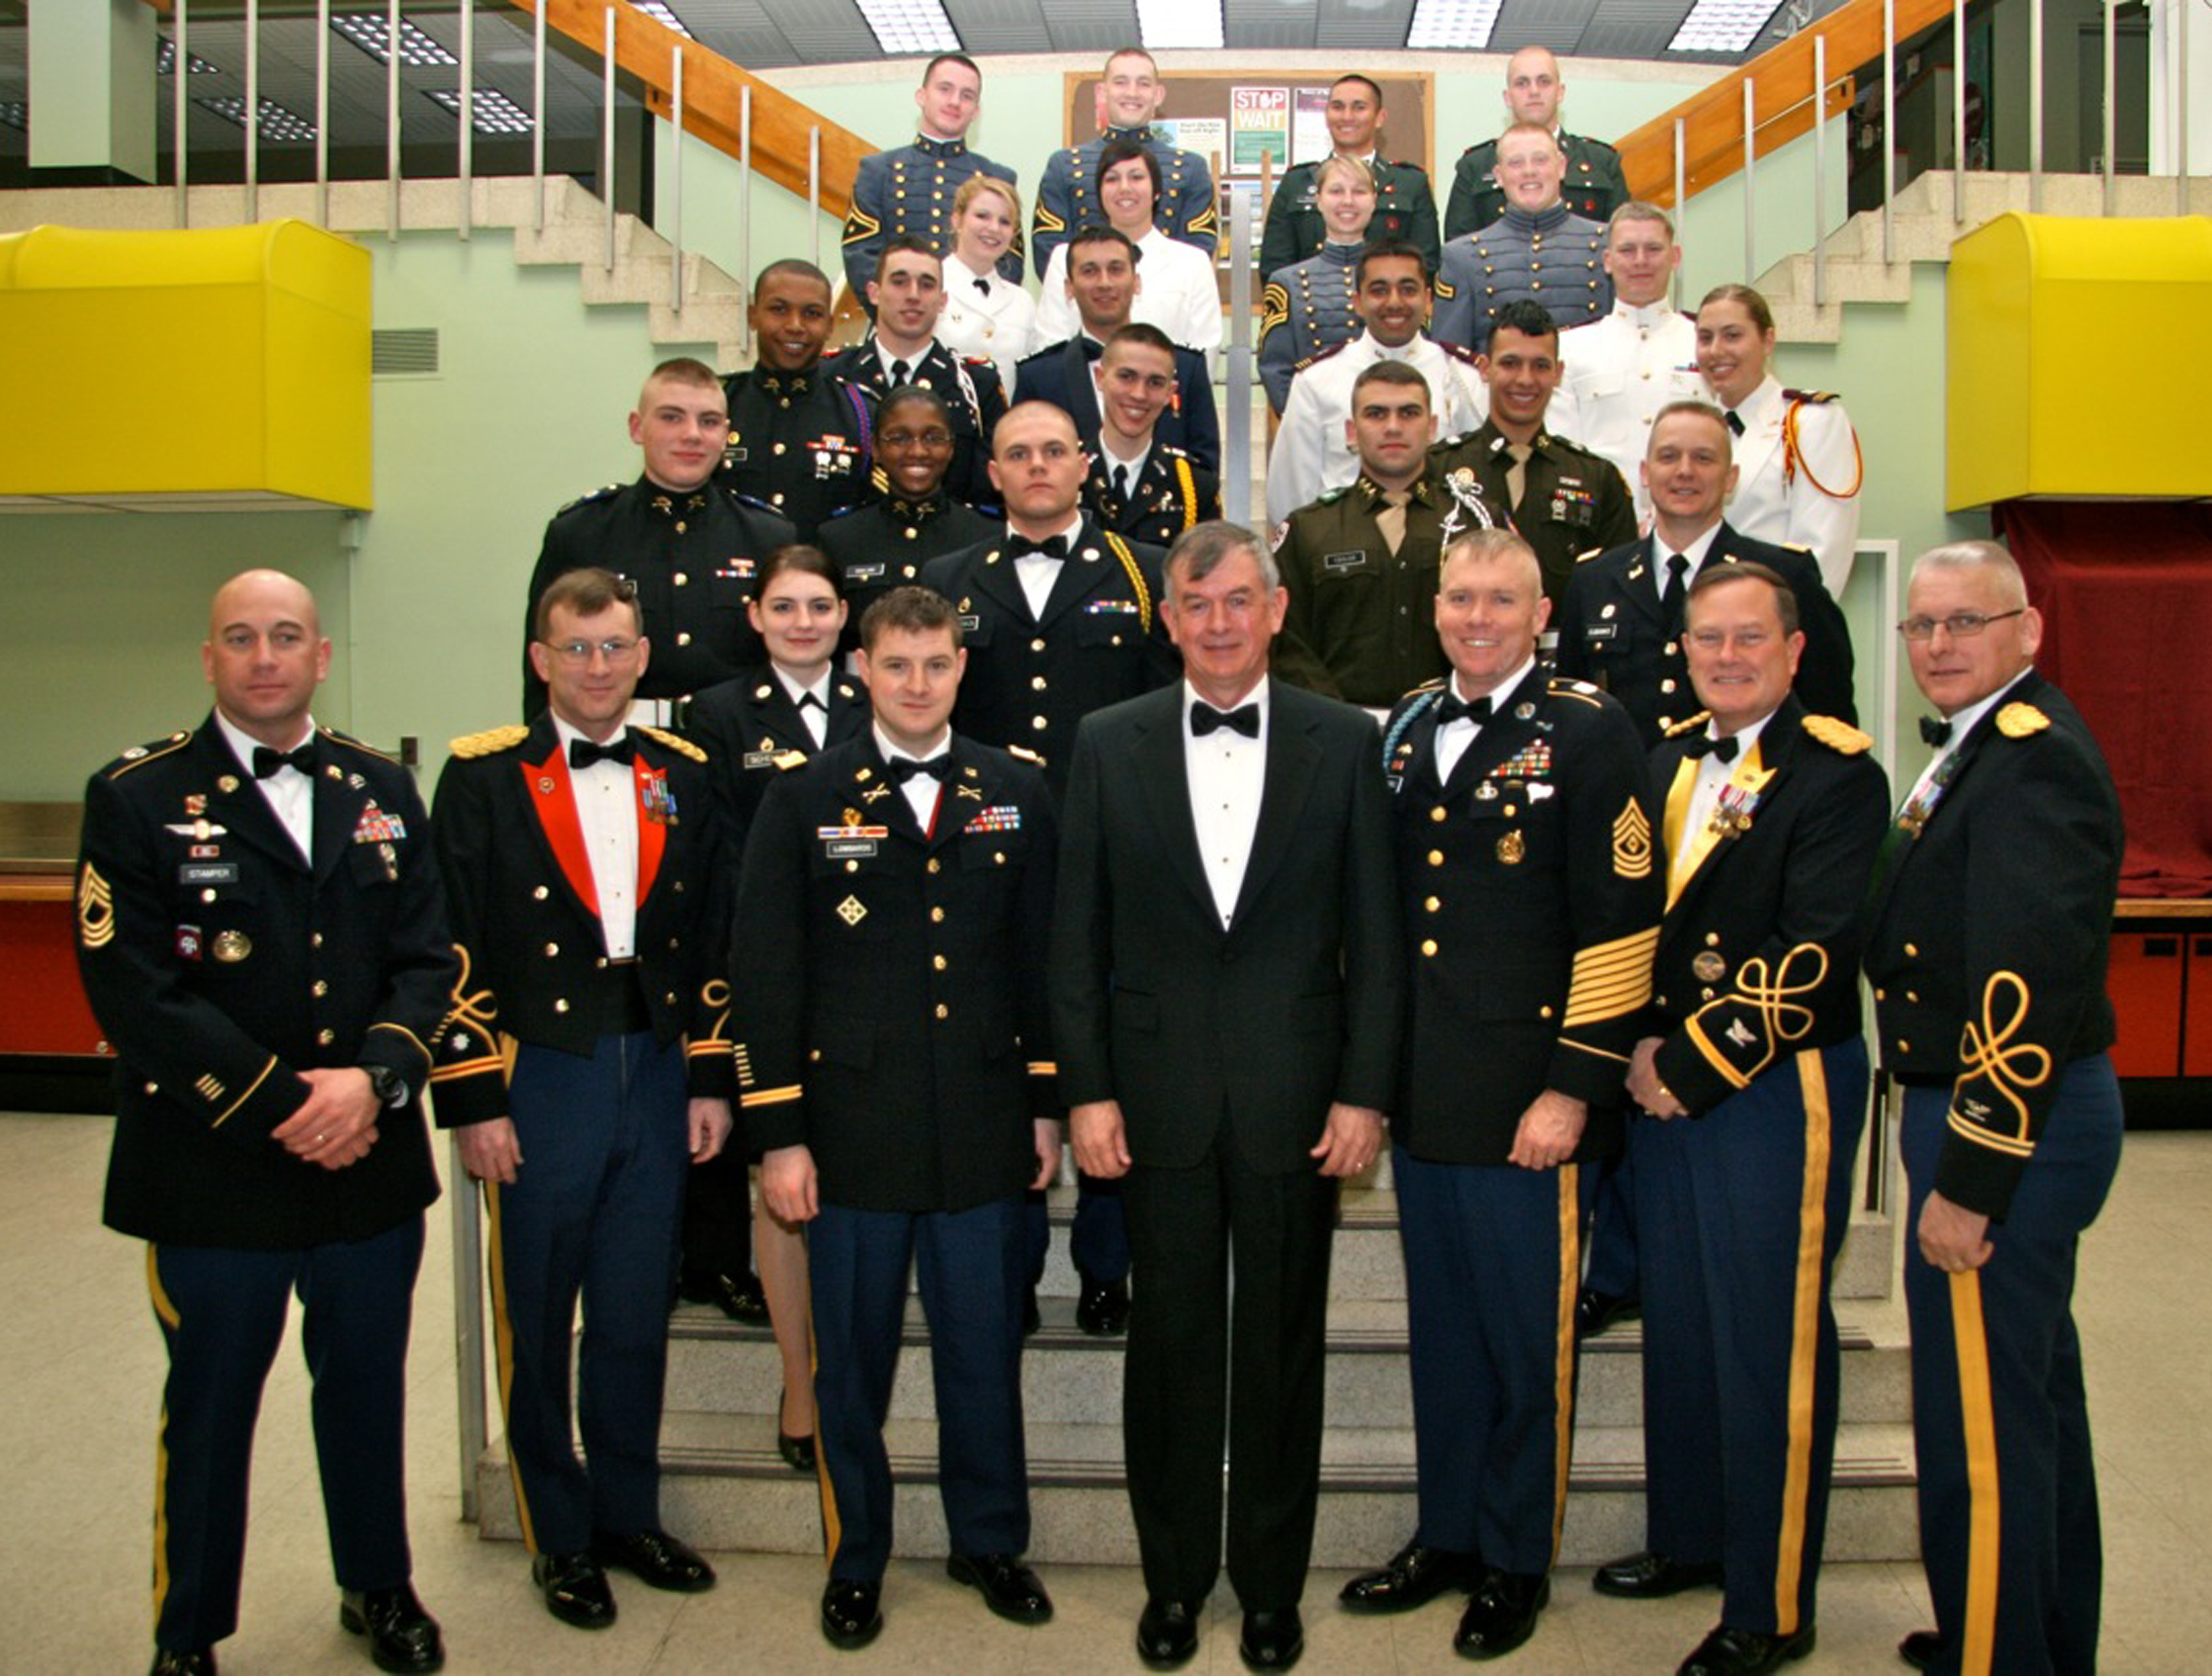 Cadets and visiting attendees of the Virginia Tech Corps of Cadets 2010 Leadership Conference are seen following the Senior Banquet